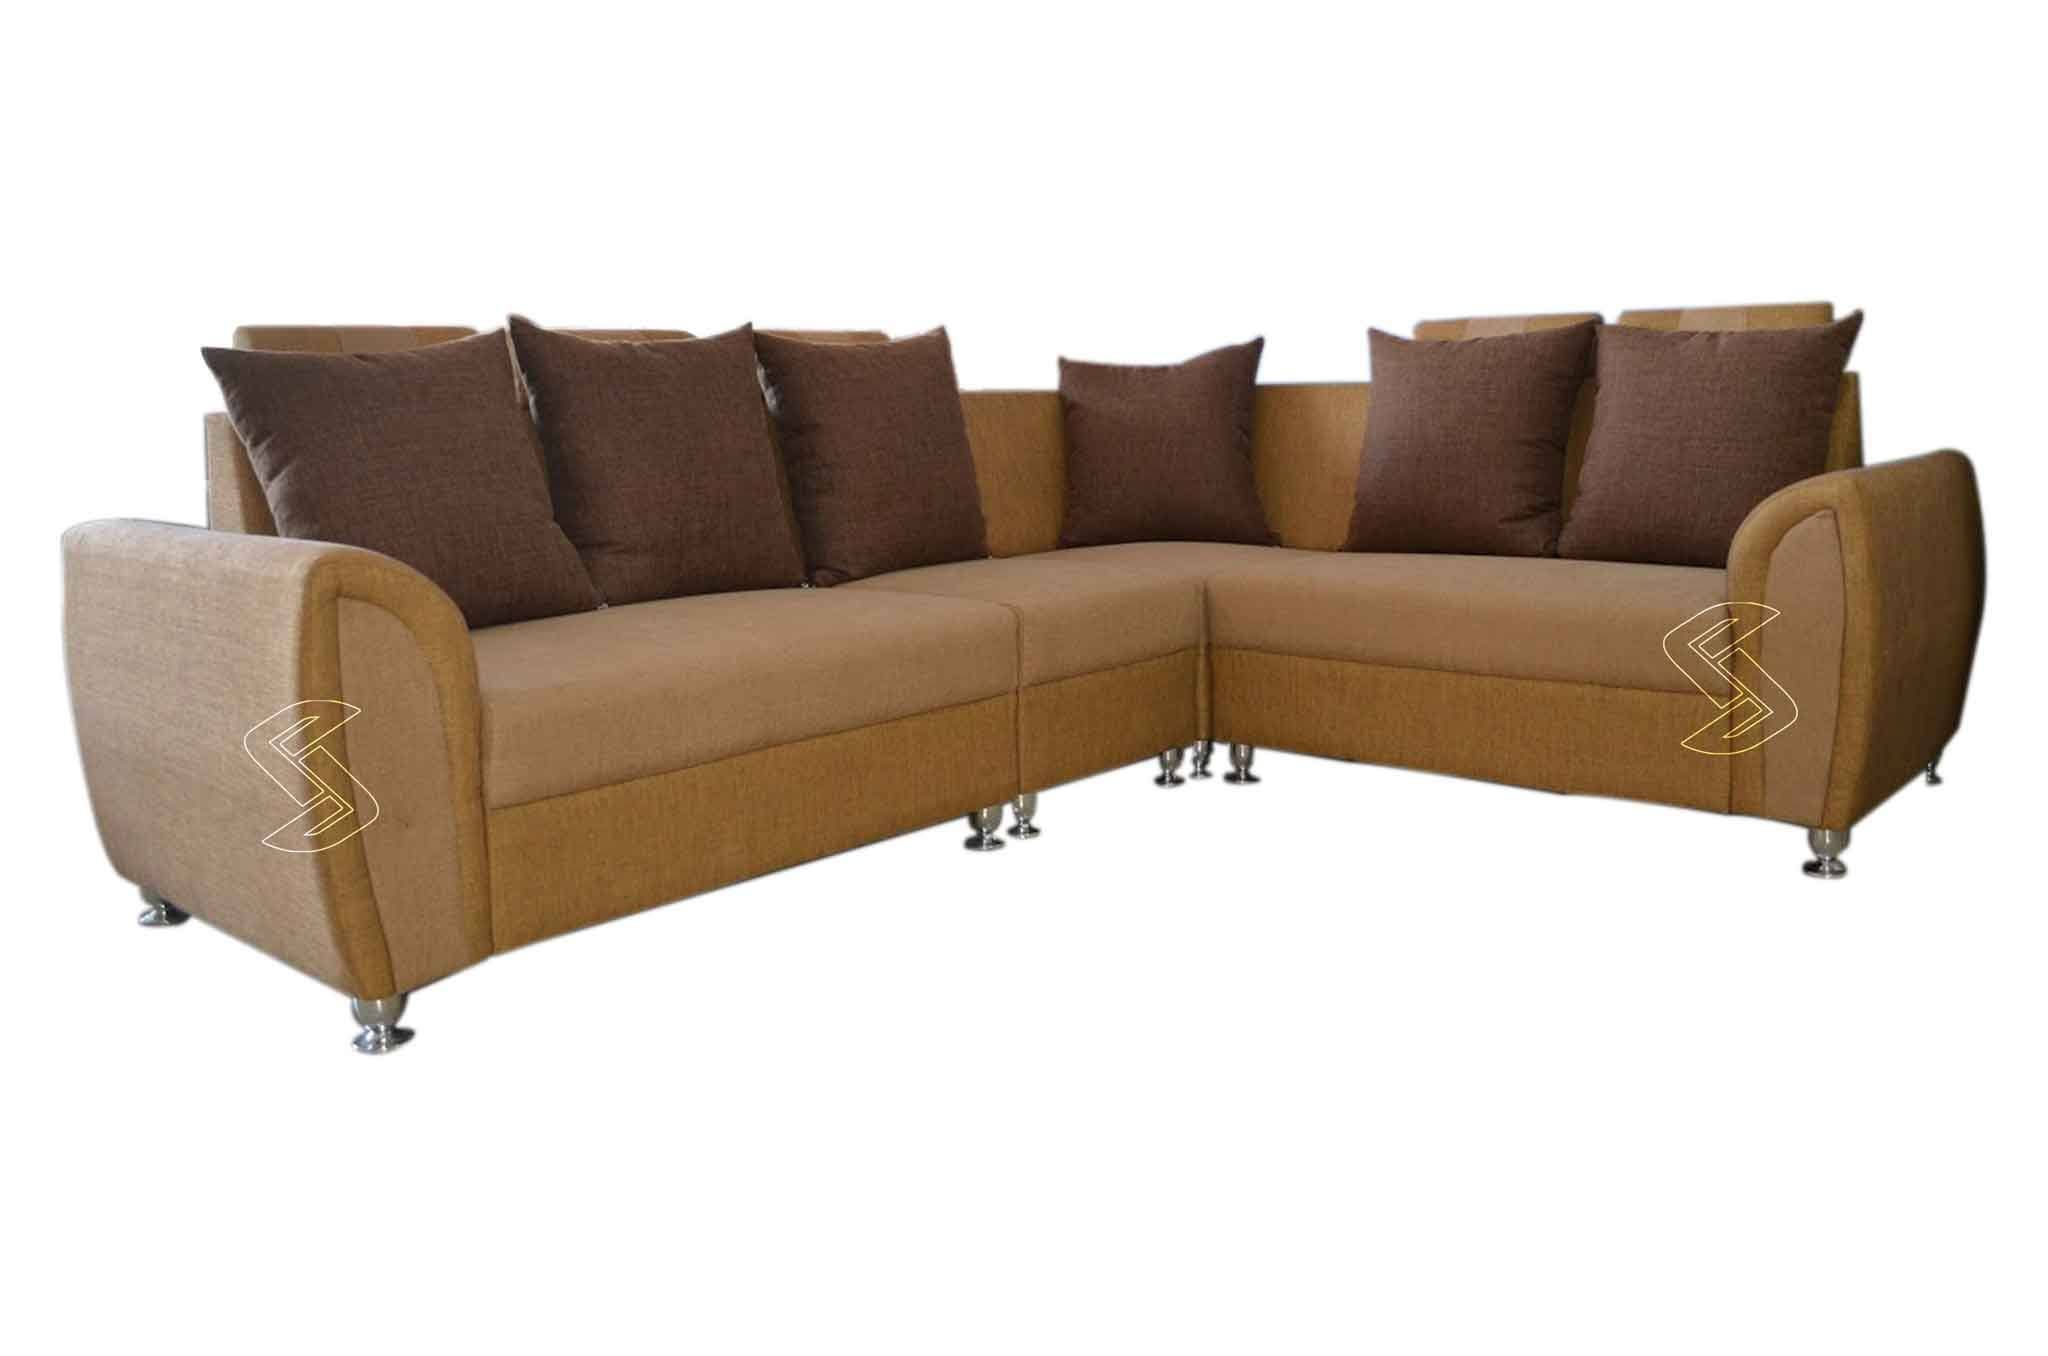 on for designs l seater loveseat deep popular most cute online festive u structure couches design size chair with persian room small seated sofa value rug recliners couch brands white living durable catalogue full of sofas best cum cushions quality reviews diamond set recliner sale leather buy wooden shape shaped geeken type